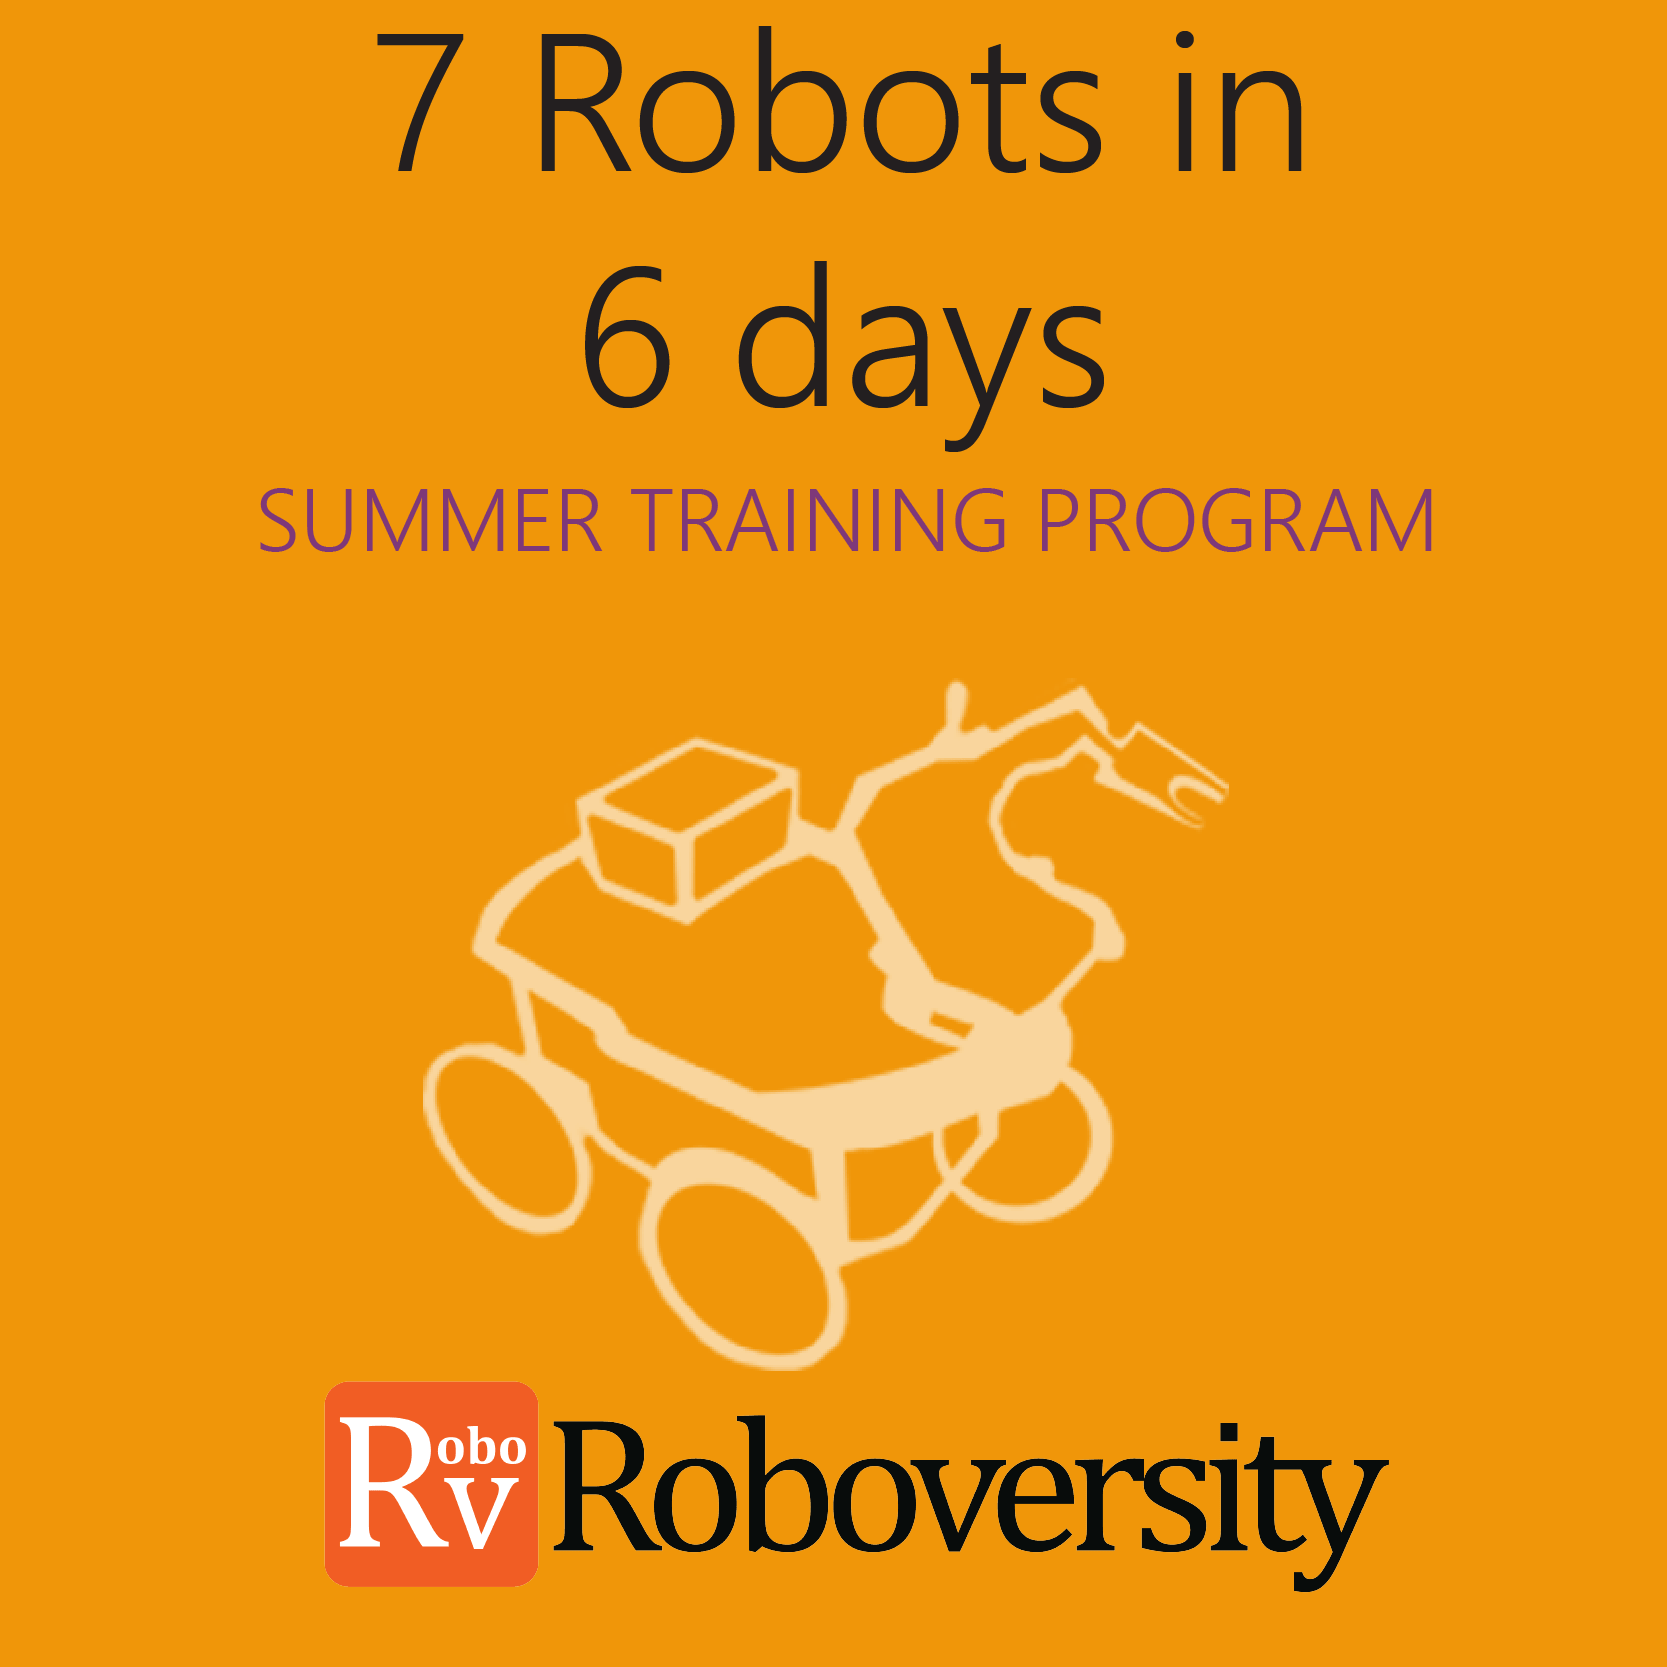 Summer Training Program in Robotics - 7 Robots in 6 Days  at Sujatha degree college, Abids